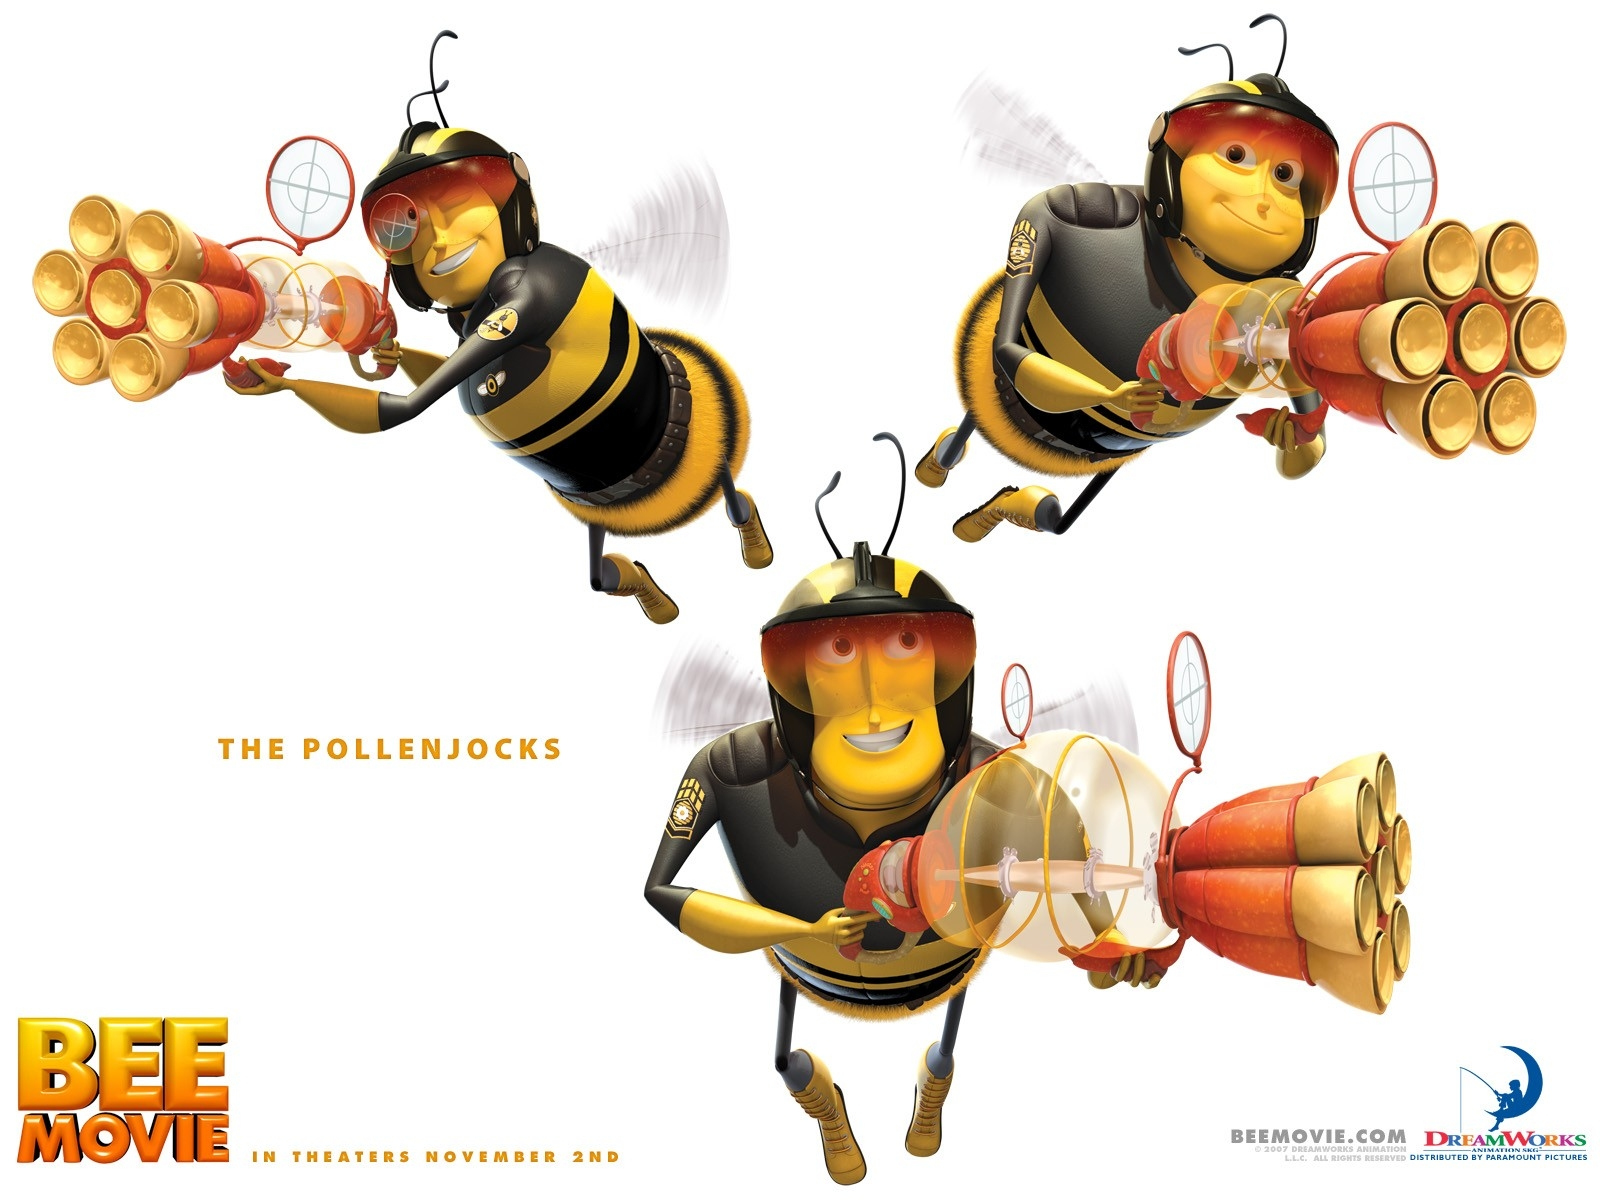 Wallpaper del film Bee Movie, del 2007